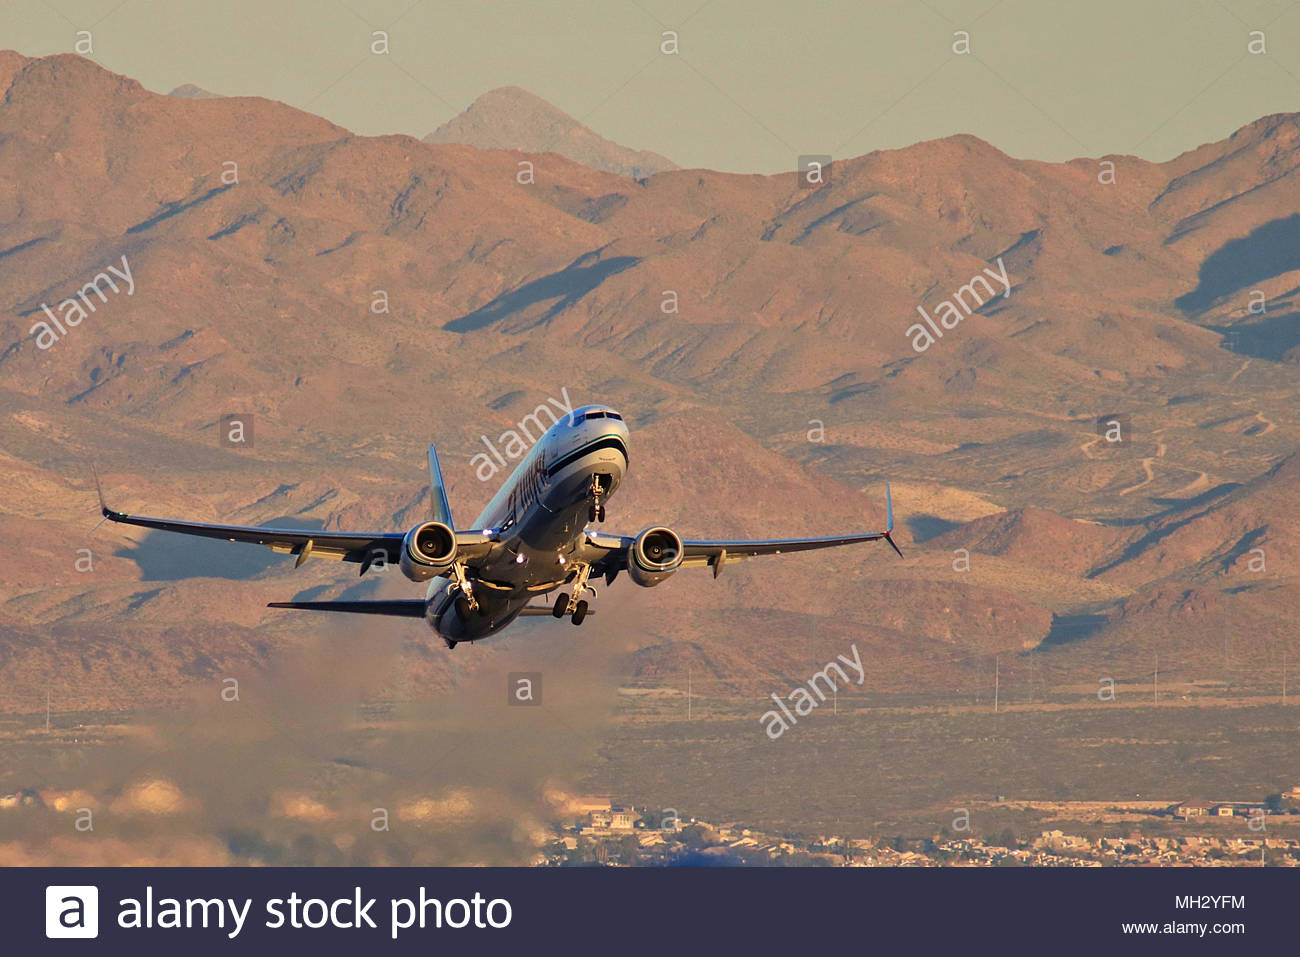 Alaskan Airlines Boeing 737 taking off from the Las Vegas McCarran International Airport with the Sierra Nevada in the background. - Stock Image